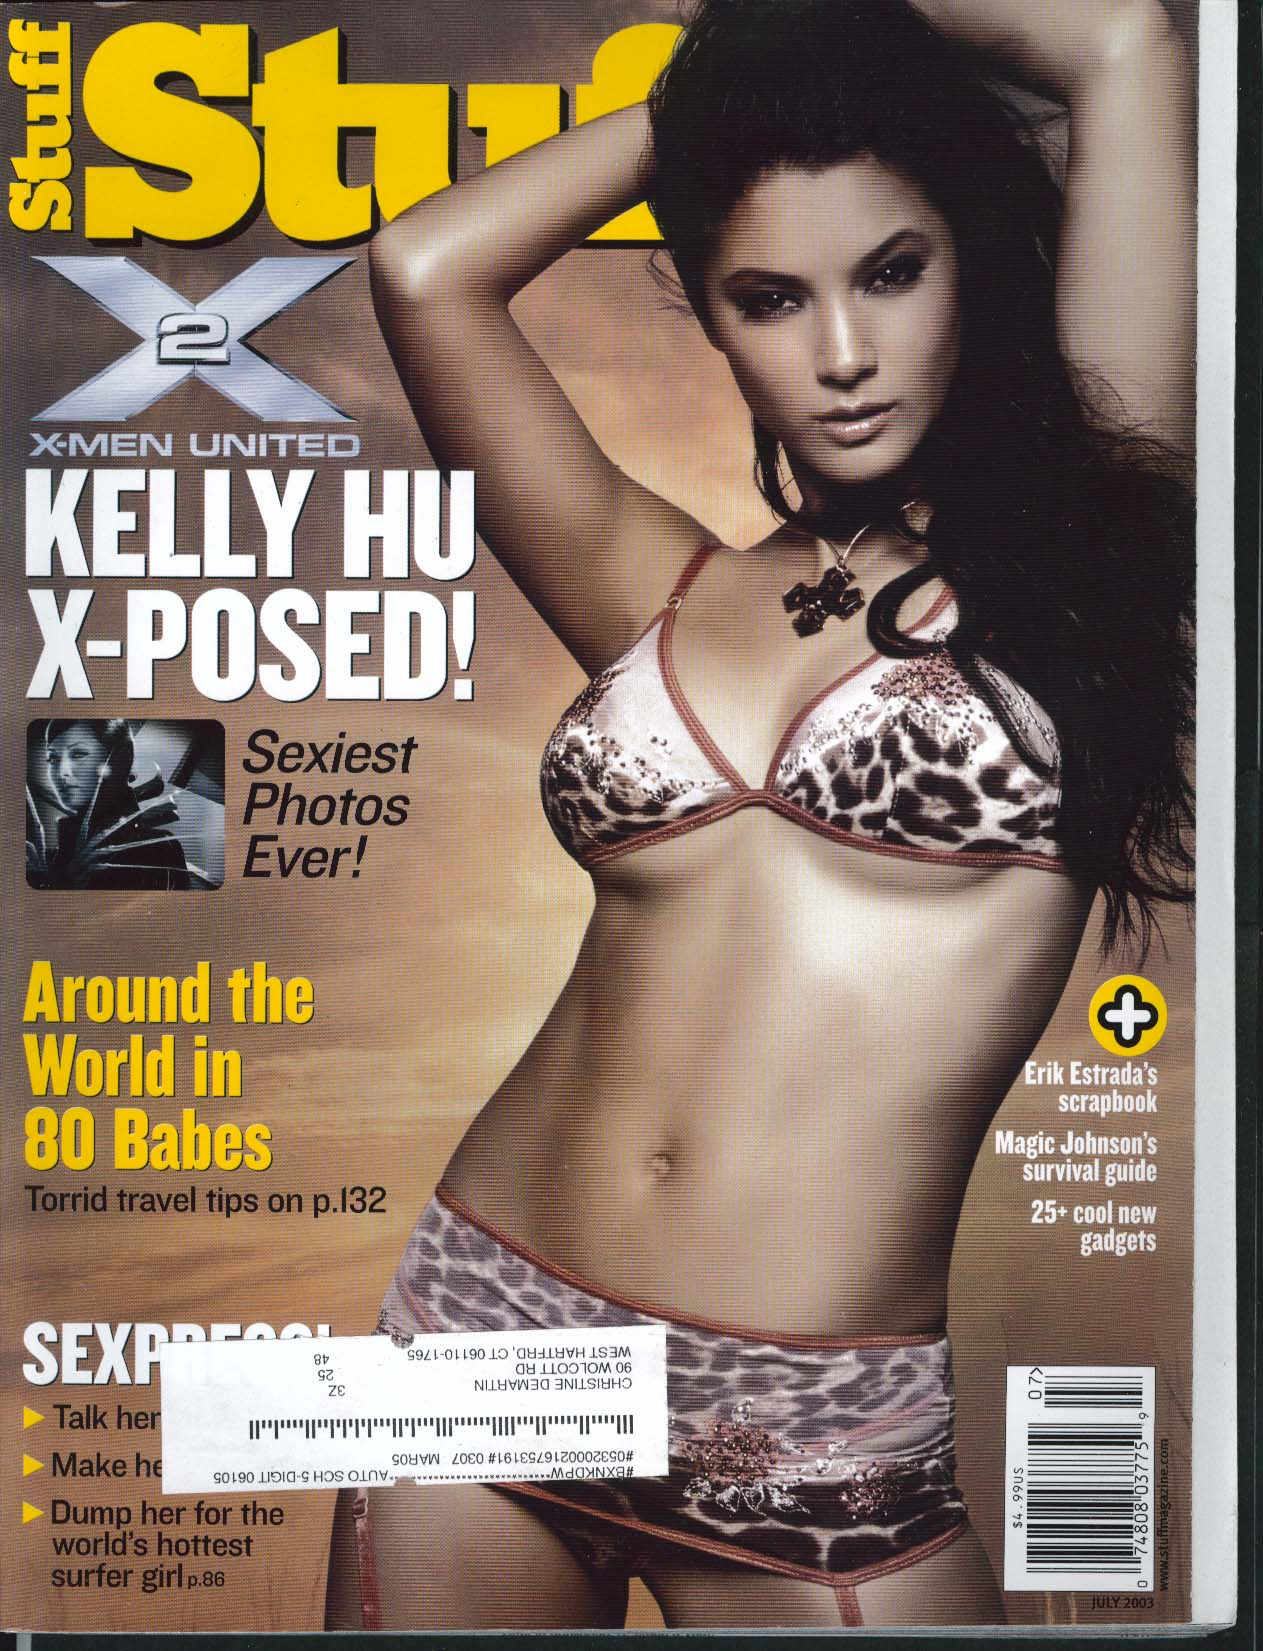 STUFF Kelly Hu Erik Estrada Magic Johnson Stacy Keibler Stan Winston 7 2003